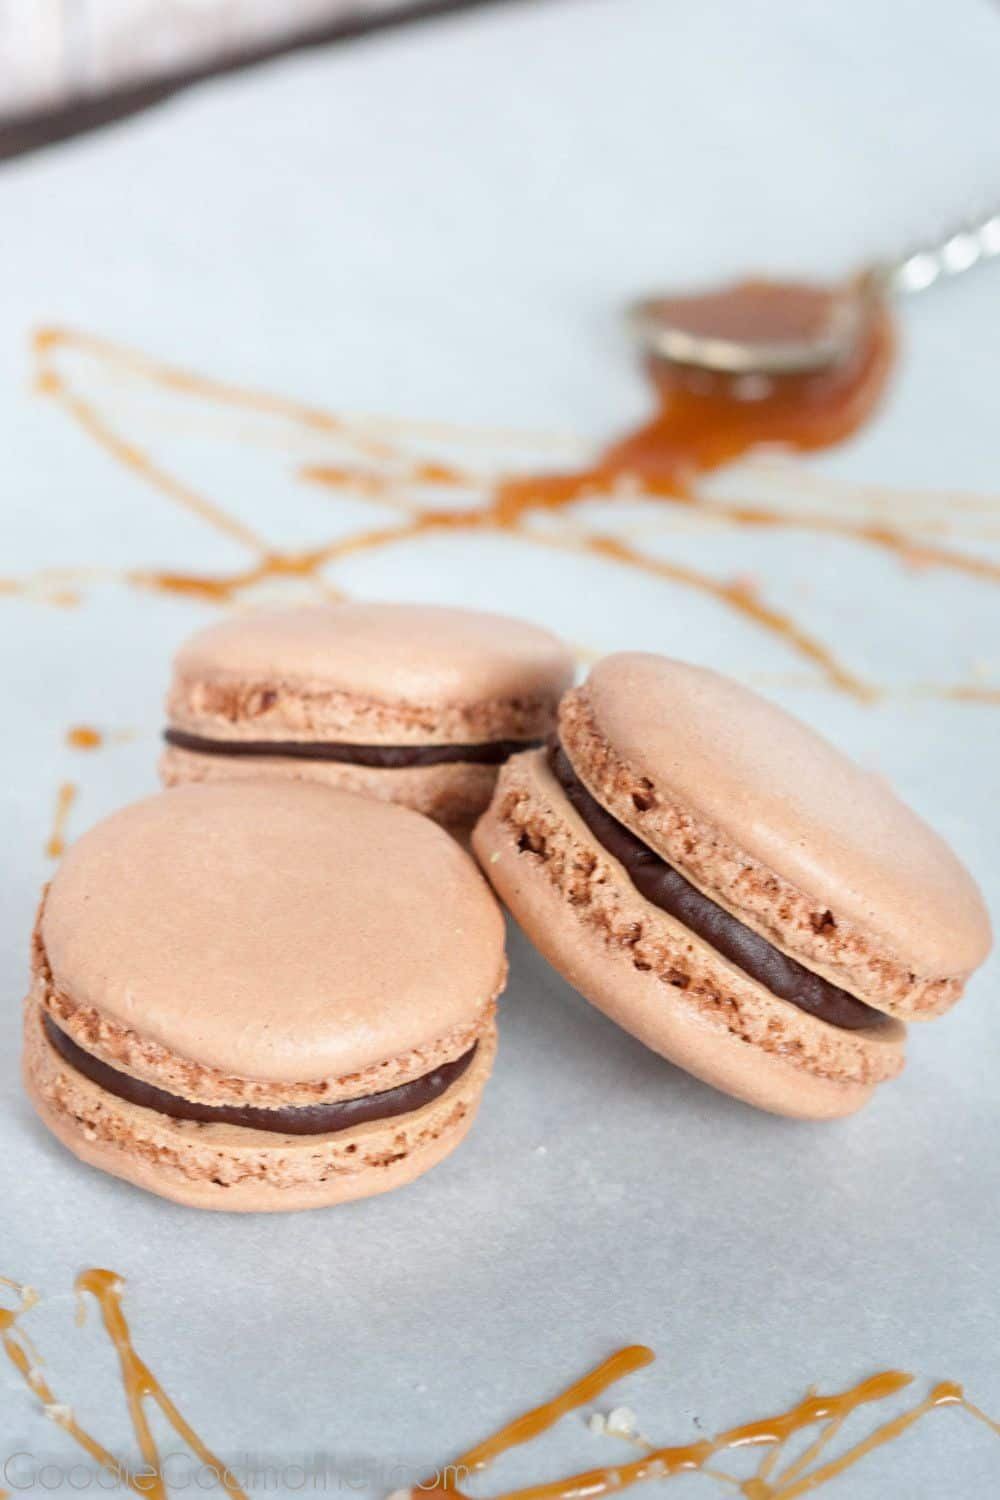 Bailey's caramel macarons - salted caramel goes to the next level with a little Irish cream, surrounded by dark chocolate ganache, and sandwiched in a macaron. Recipe on GoodieGodmother.com